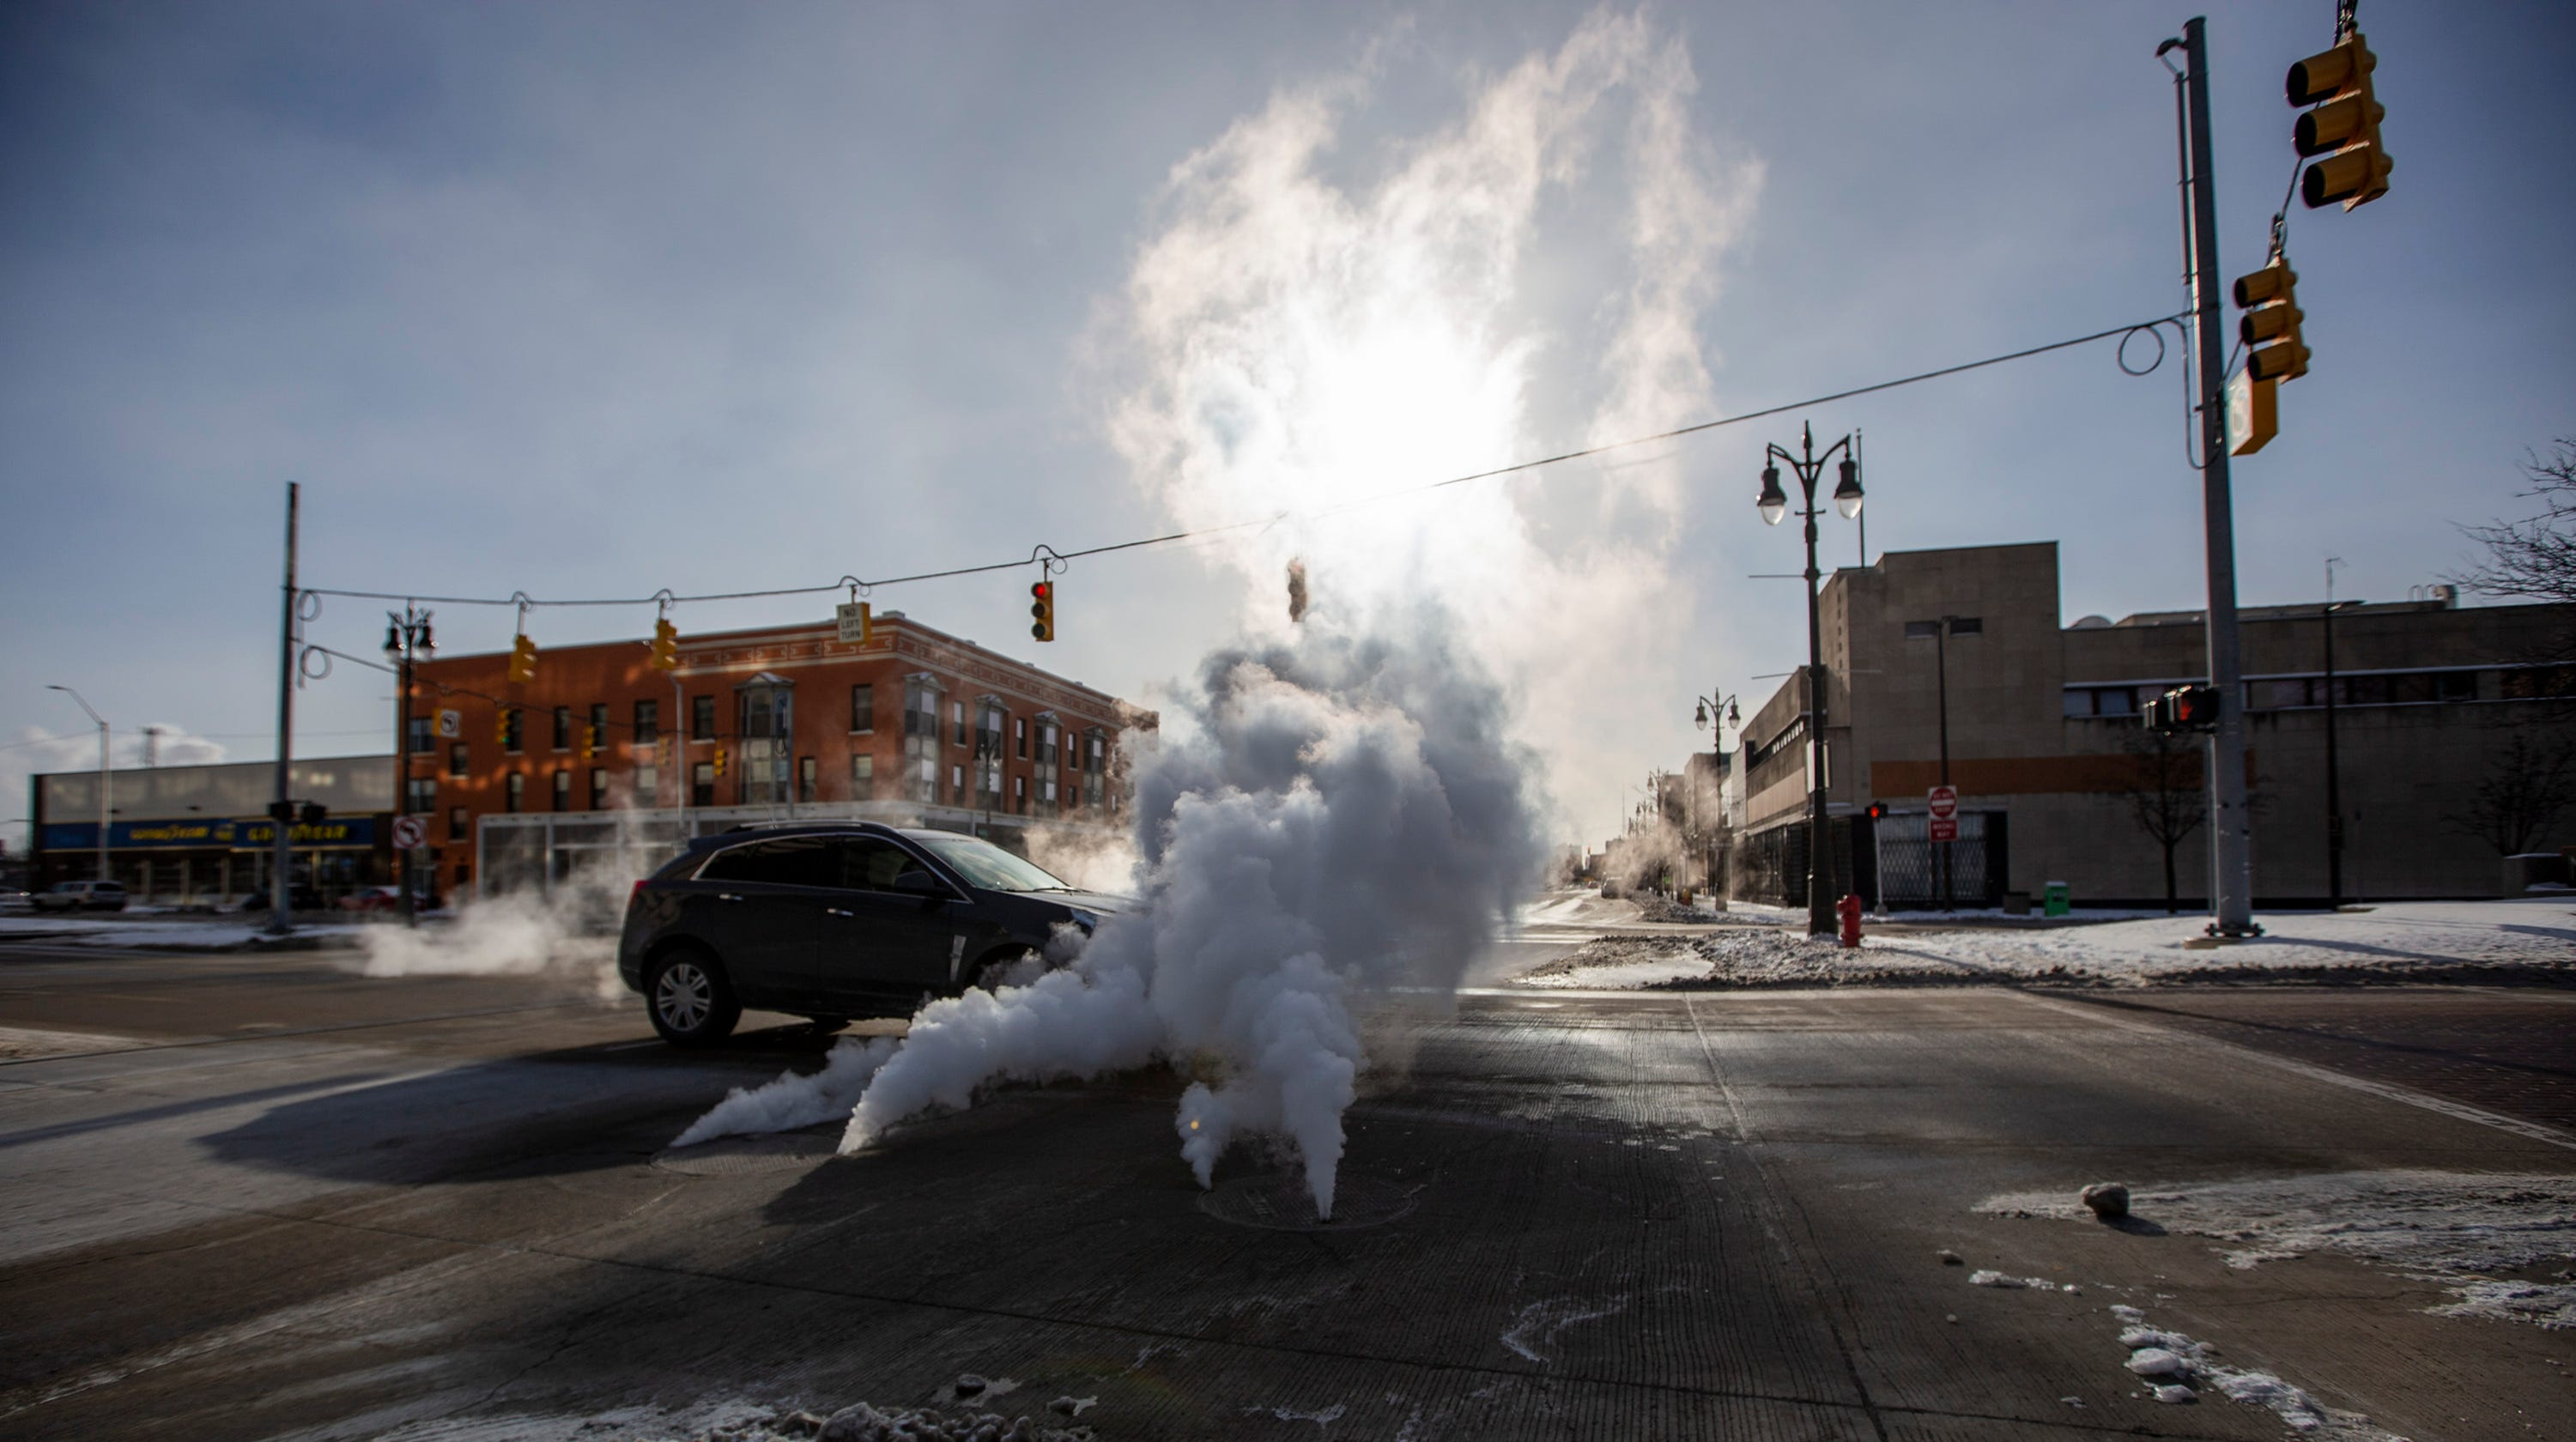 Polar vortex 2019: Detroit sets record lows